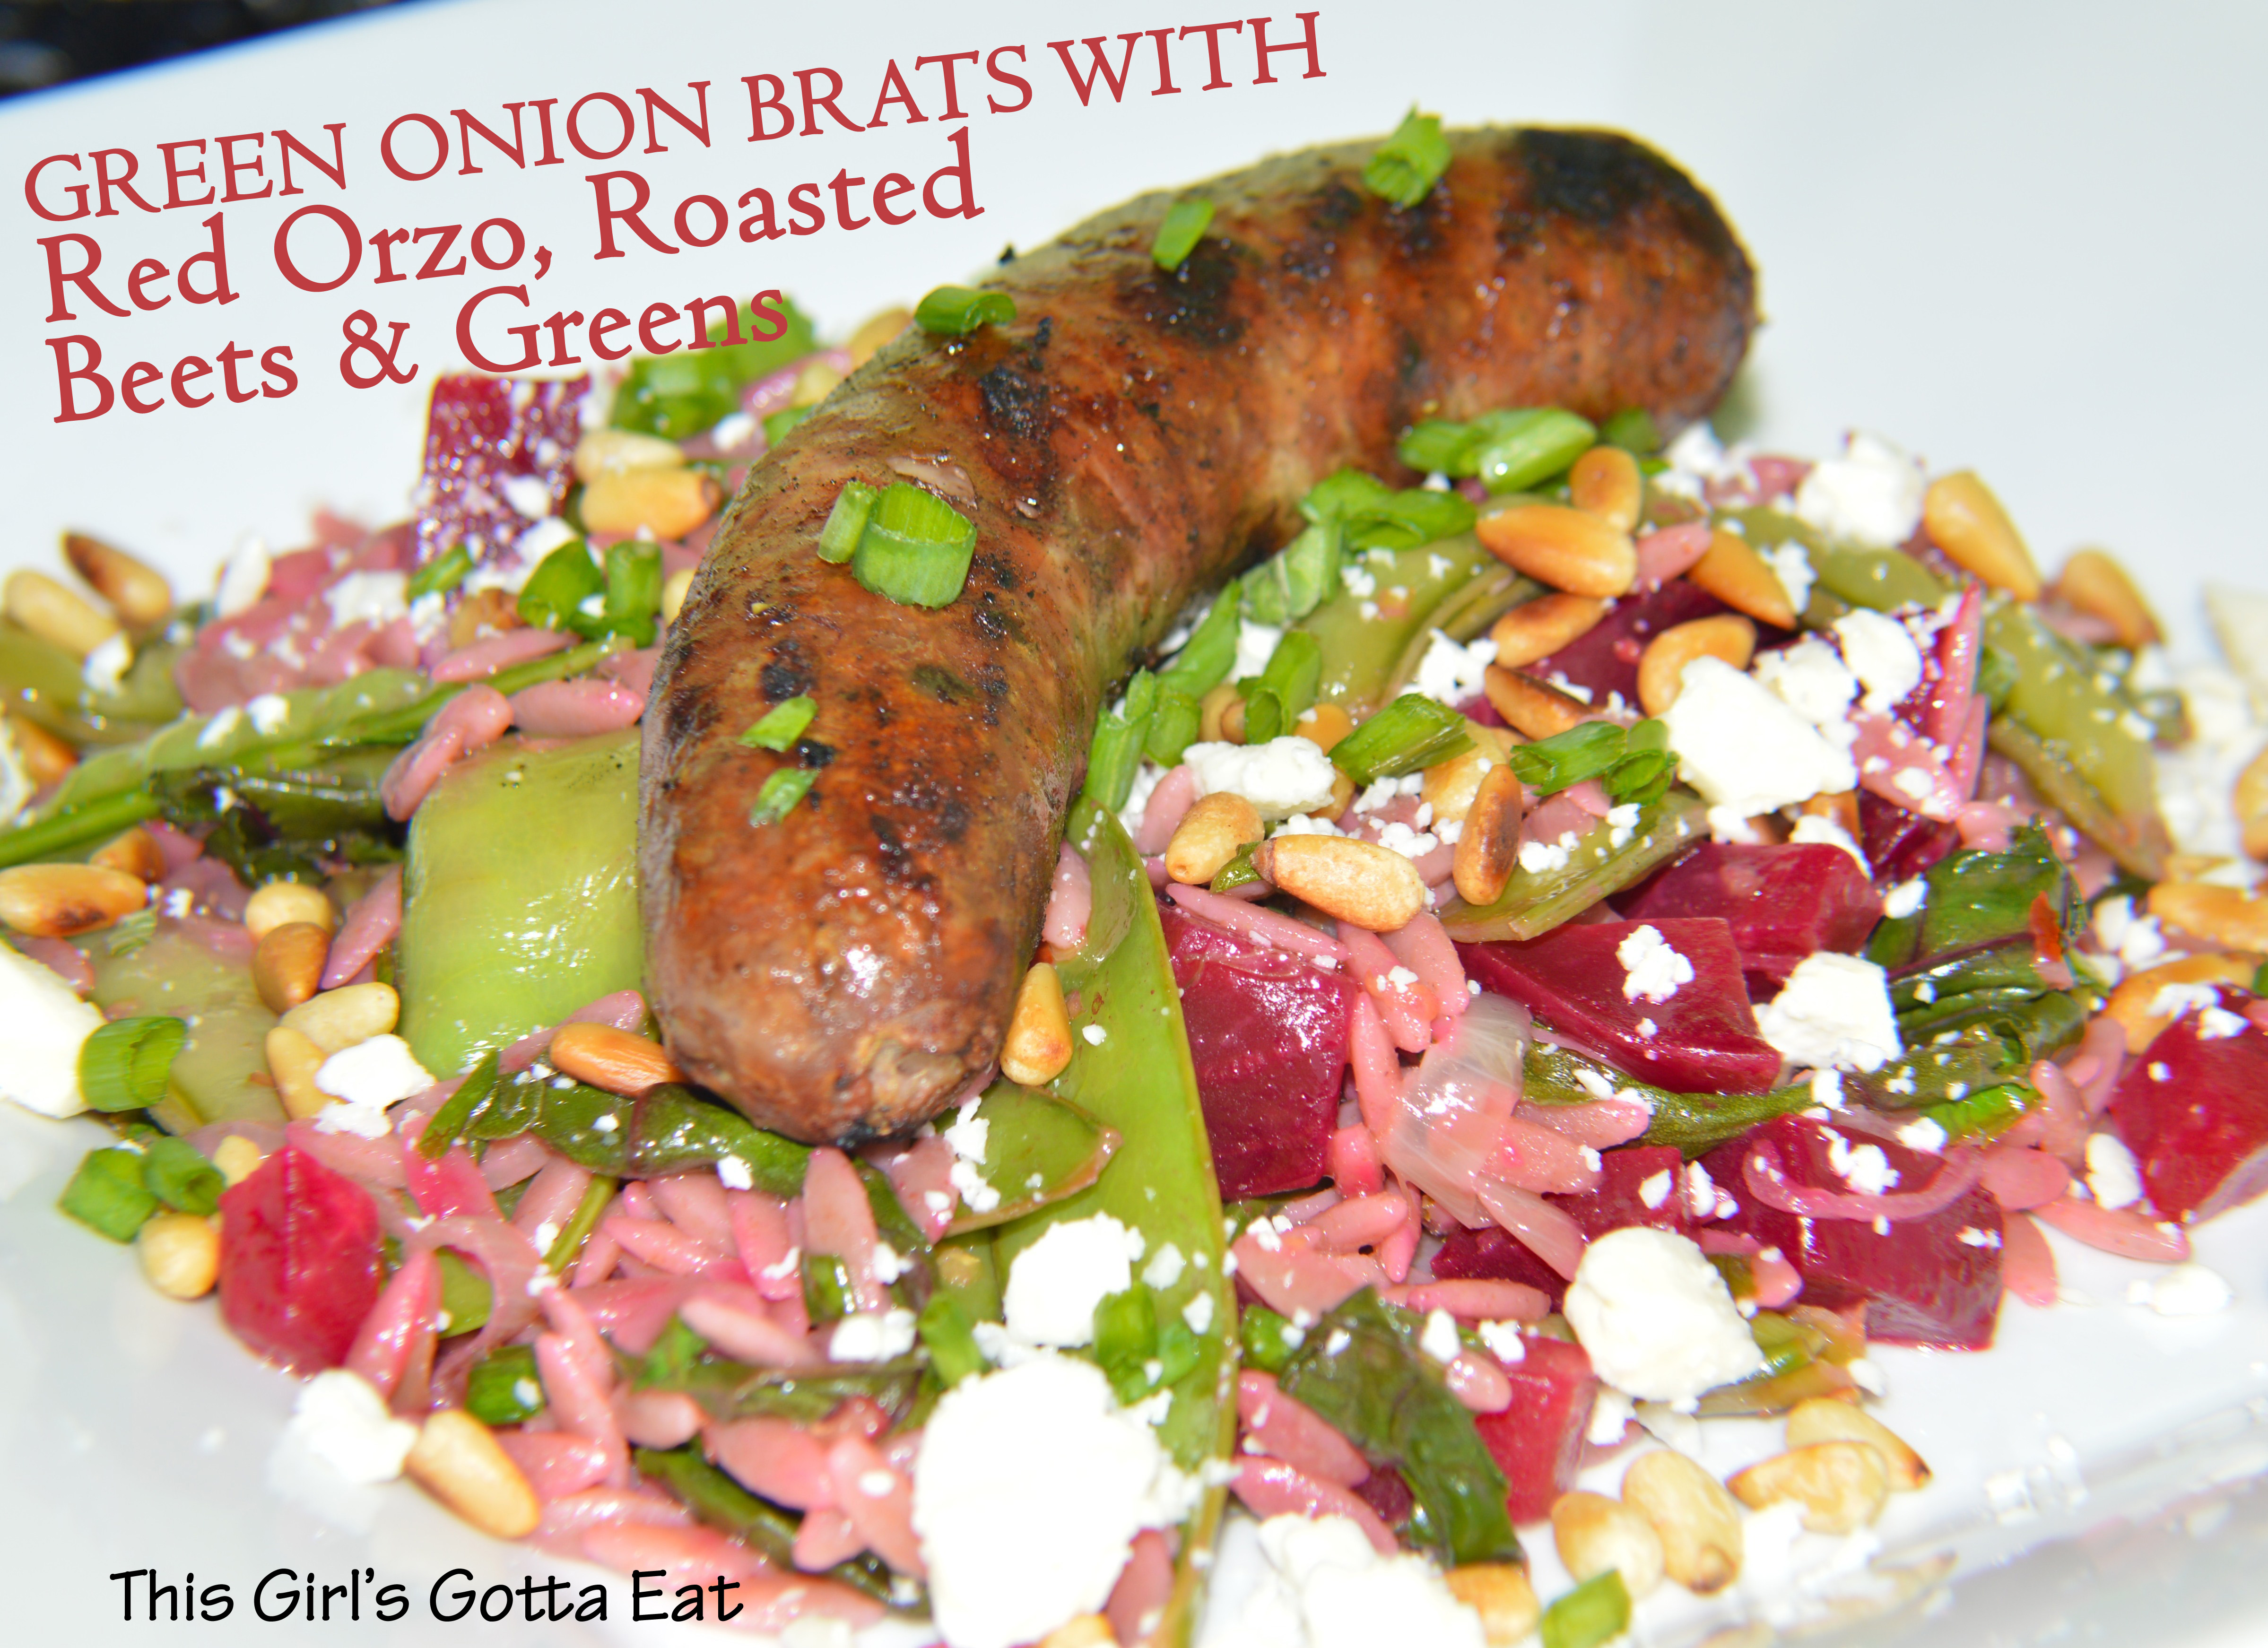 Green Onion Brats With Red Orzo, Roasted Beets and Greens ...